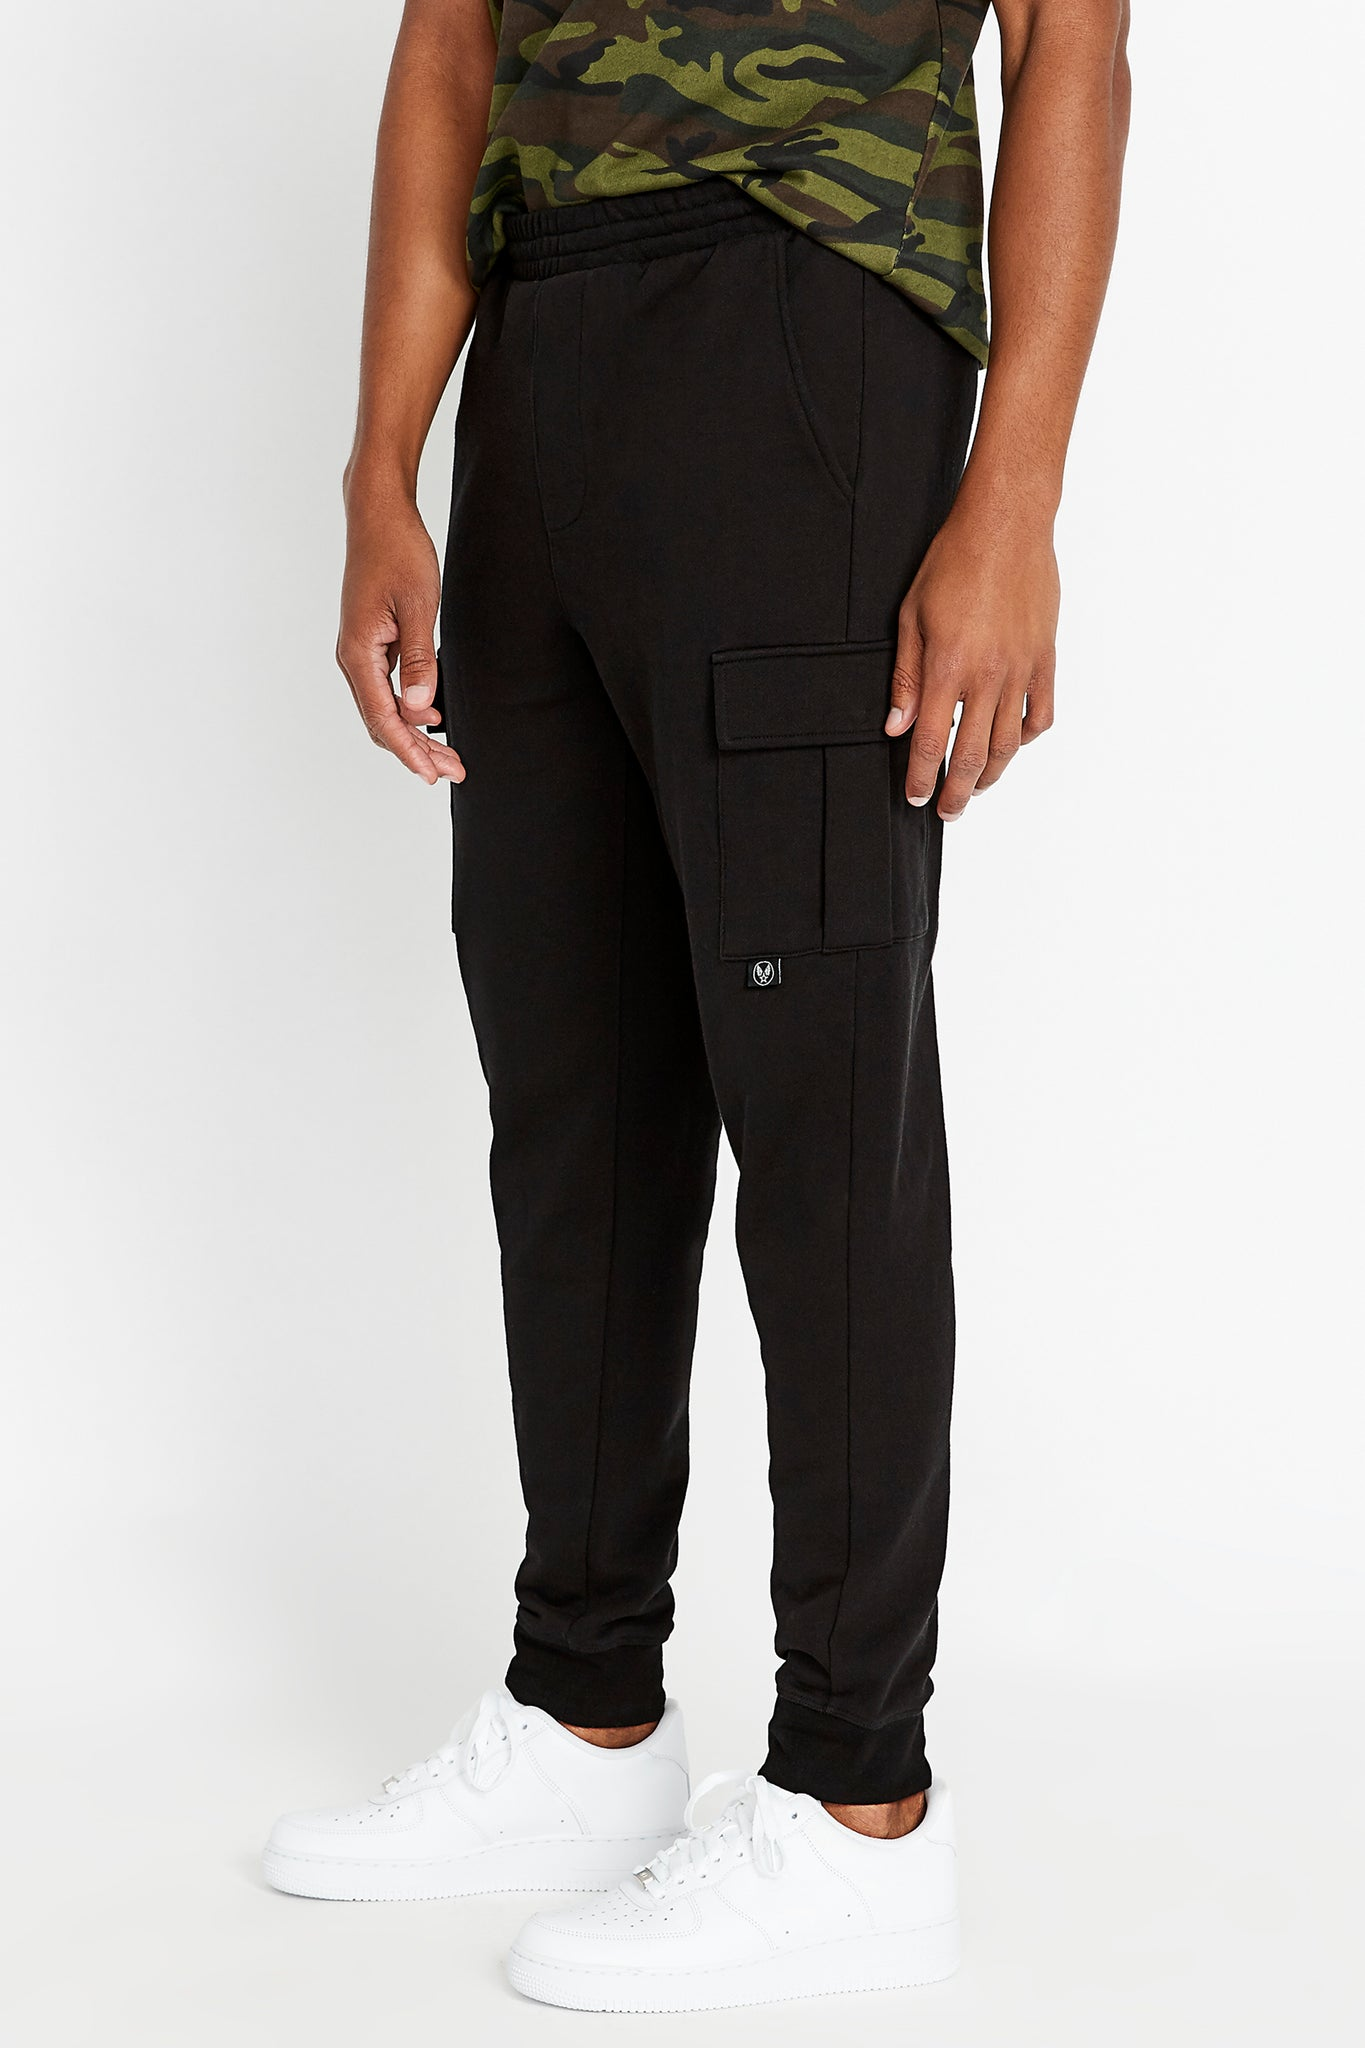 Side view of men's drawstring pant with cargo pockets.  Elastic band closing at hem. Avirex logo on pocket